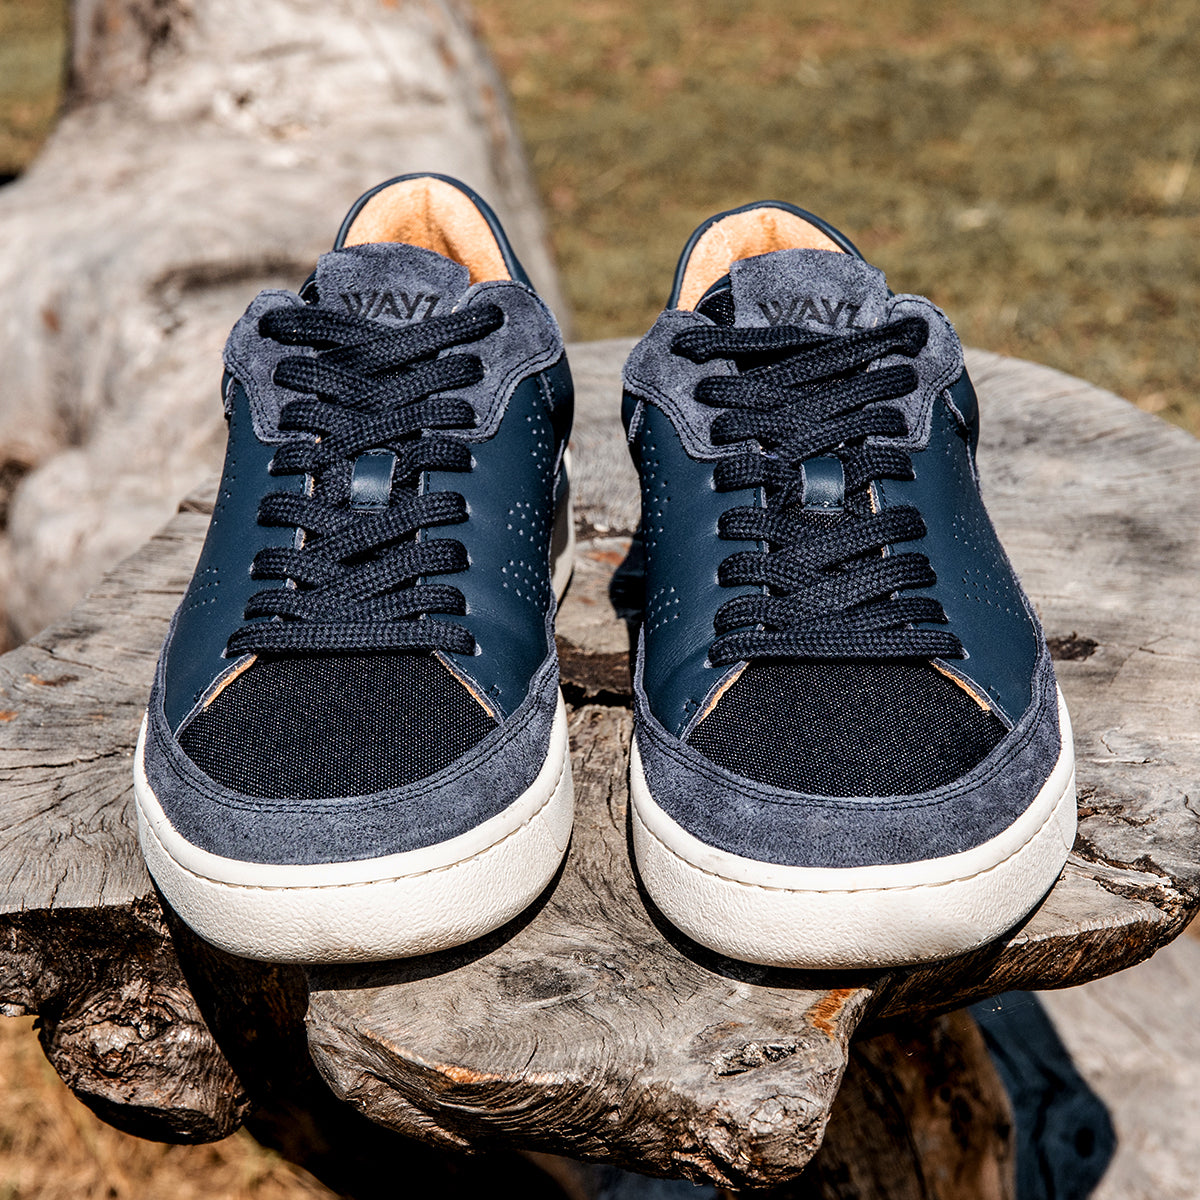 The Wanderer Sneakers